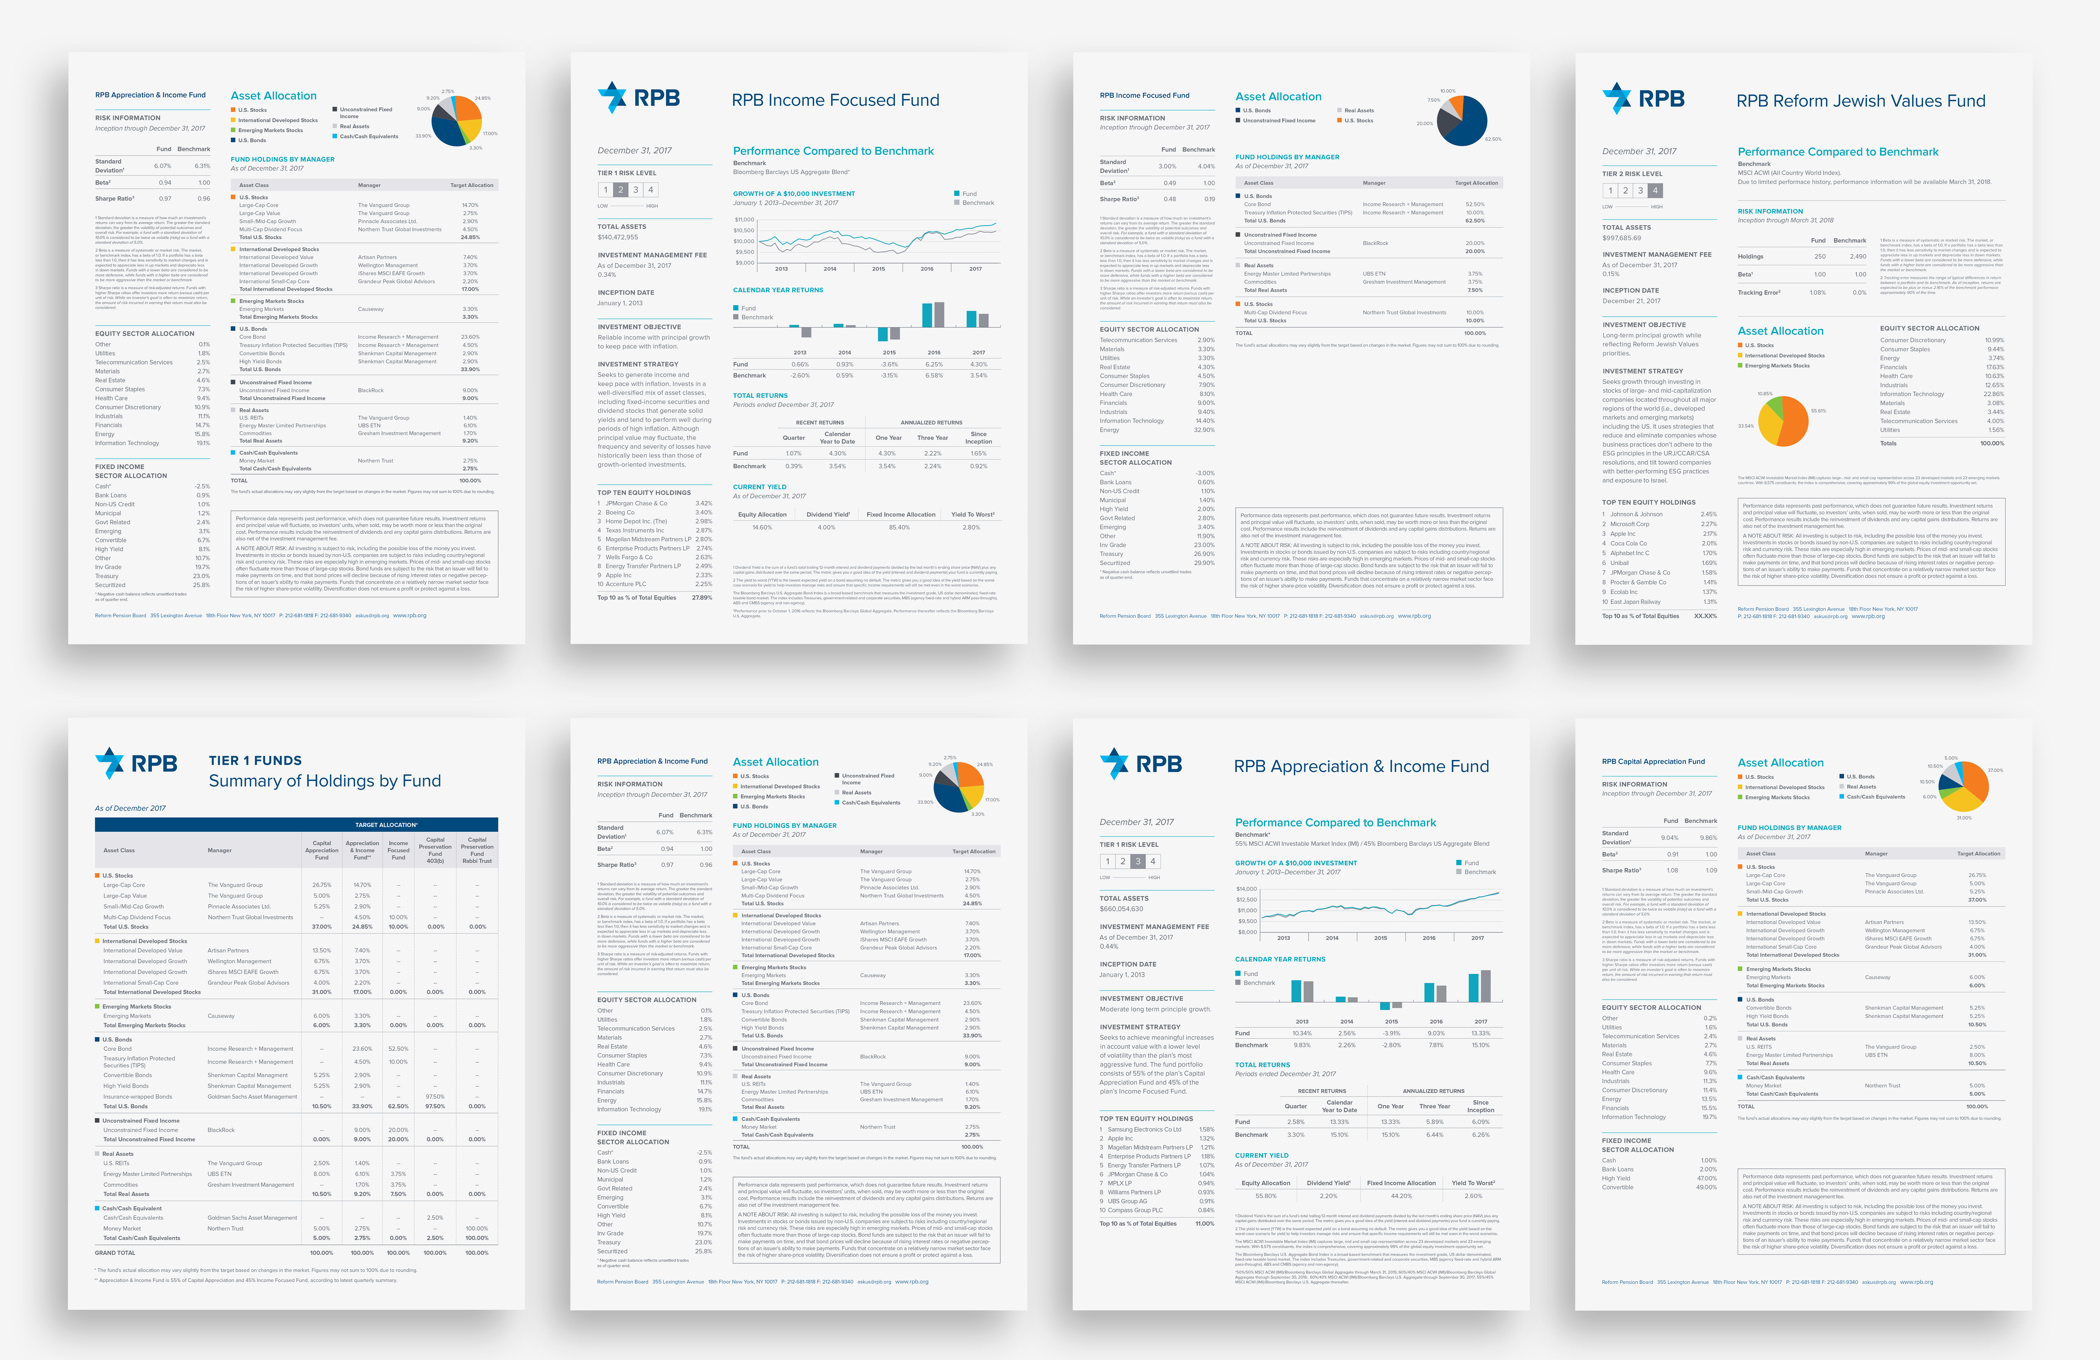 Eight pages of RPB fund facts sheet with tables and charts showing fund holdings, performance, and characteristics.